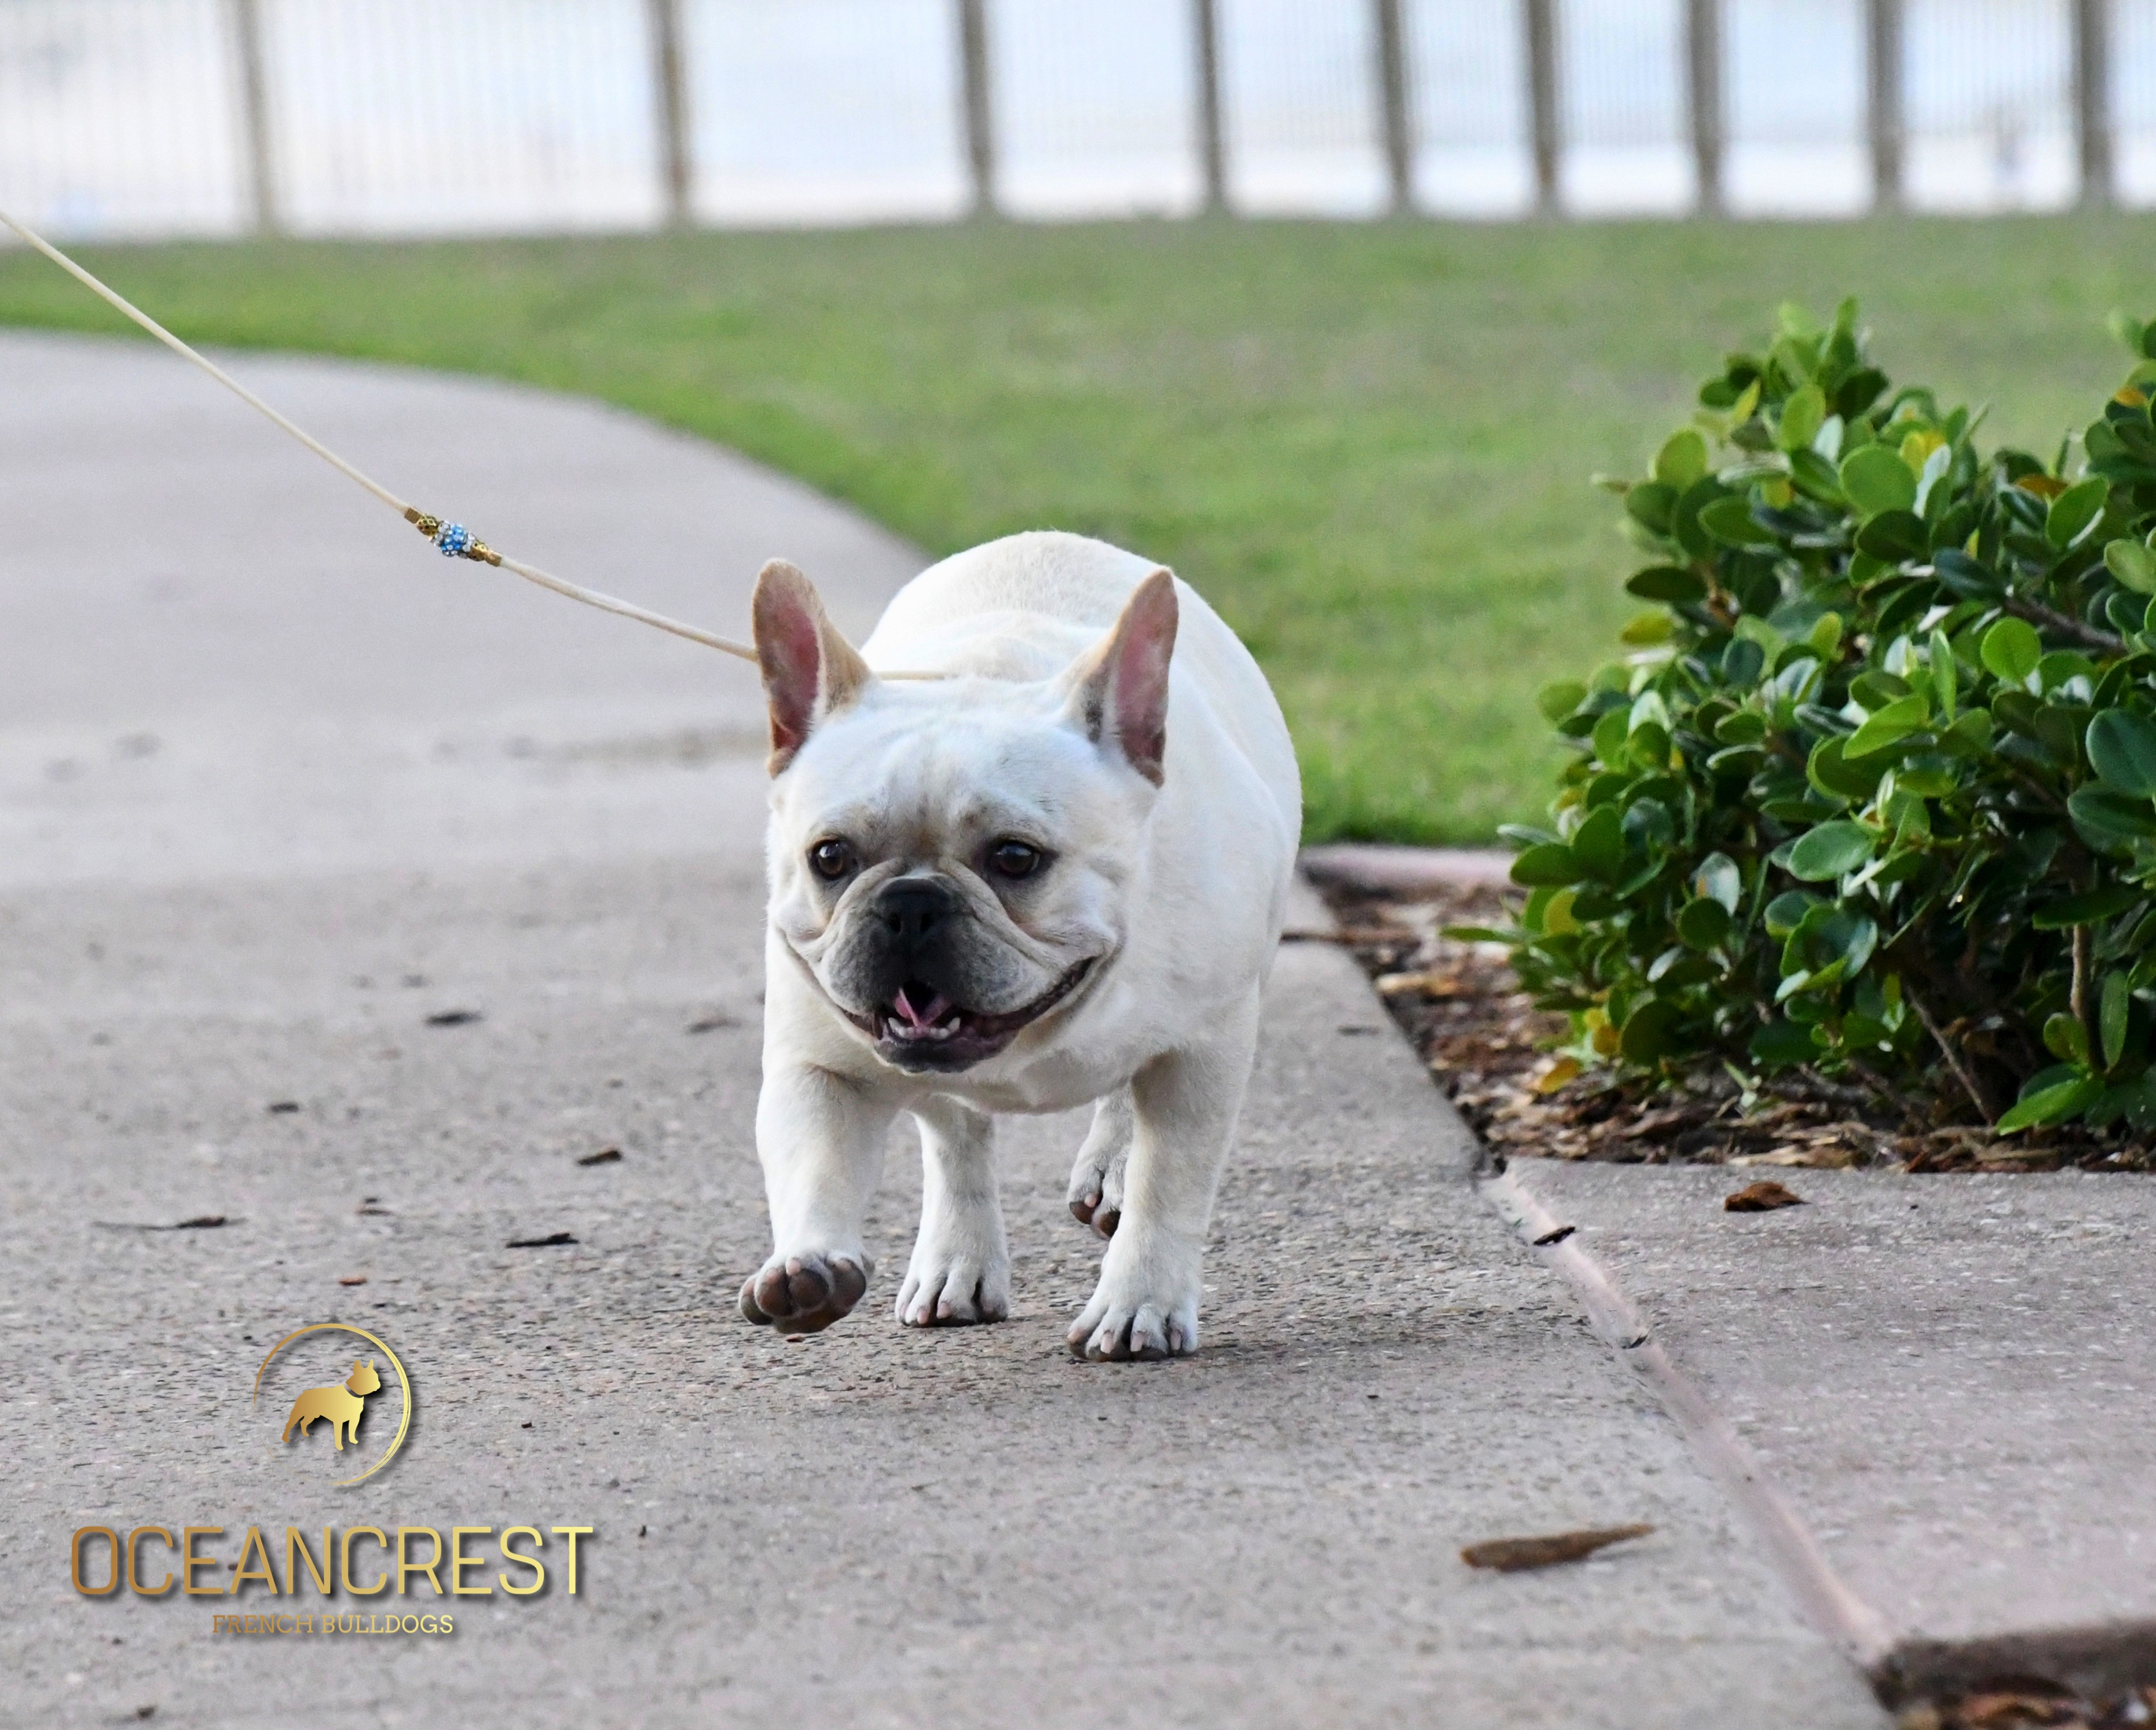 PAC-MAN, Oceancrest French Bulldogs